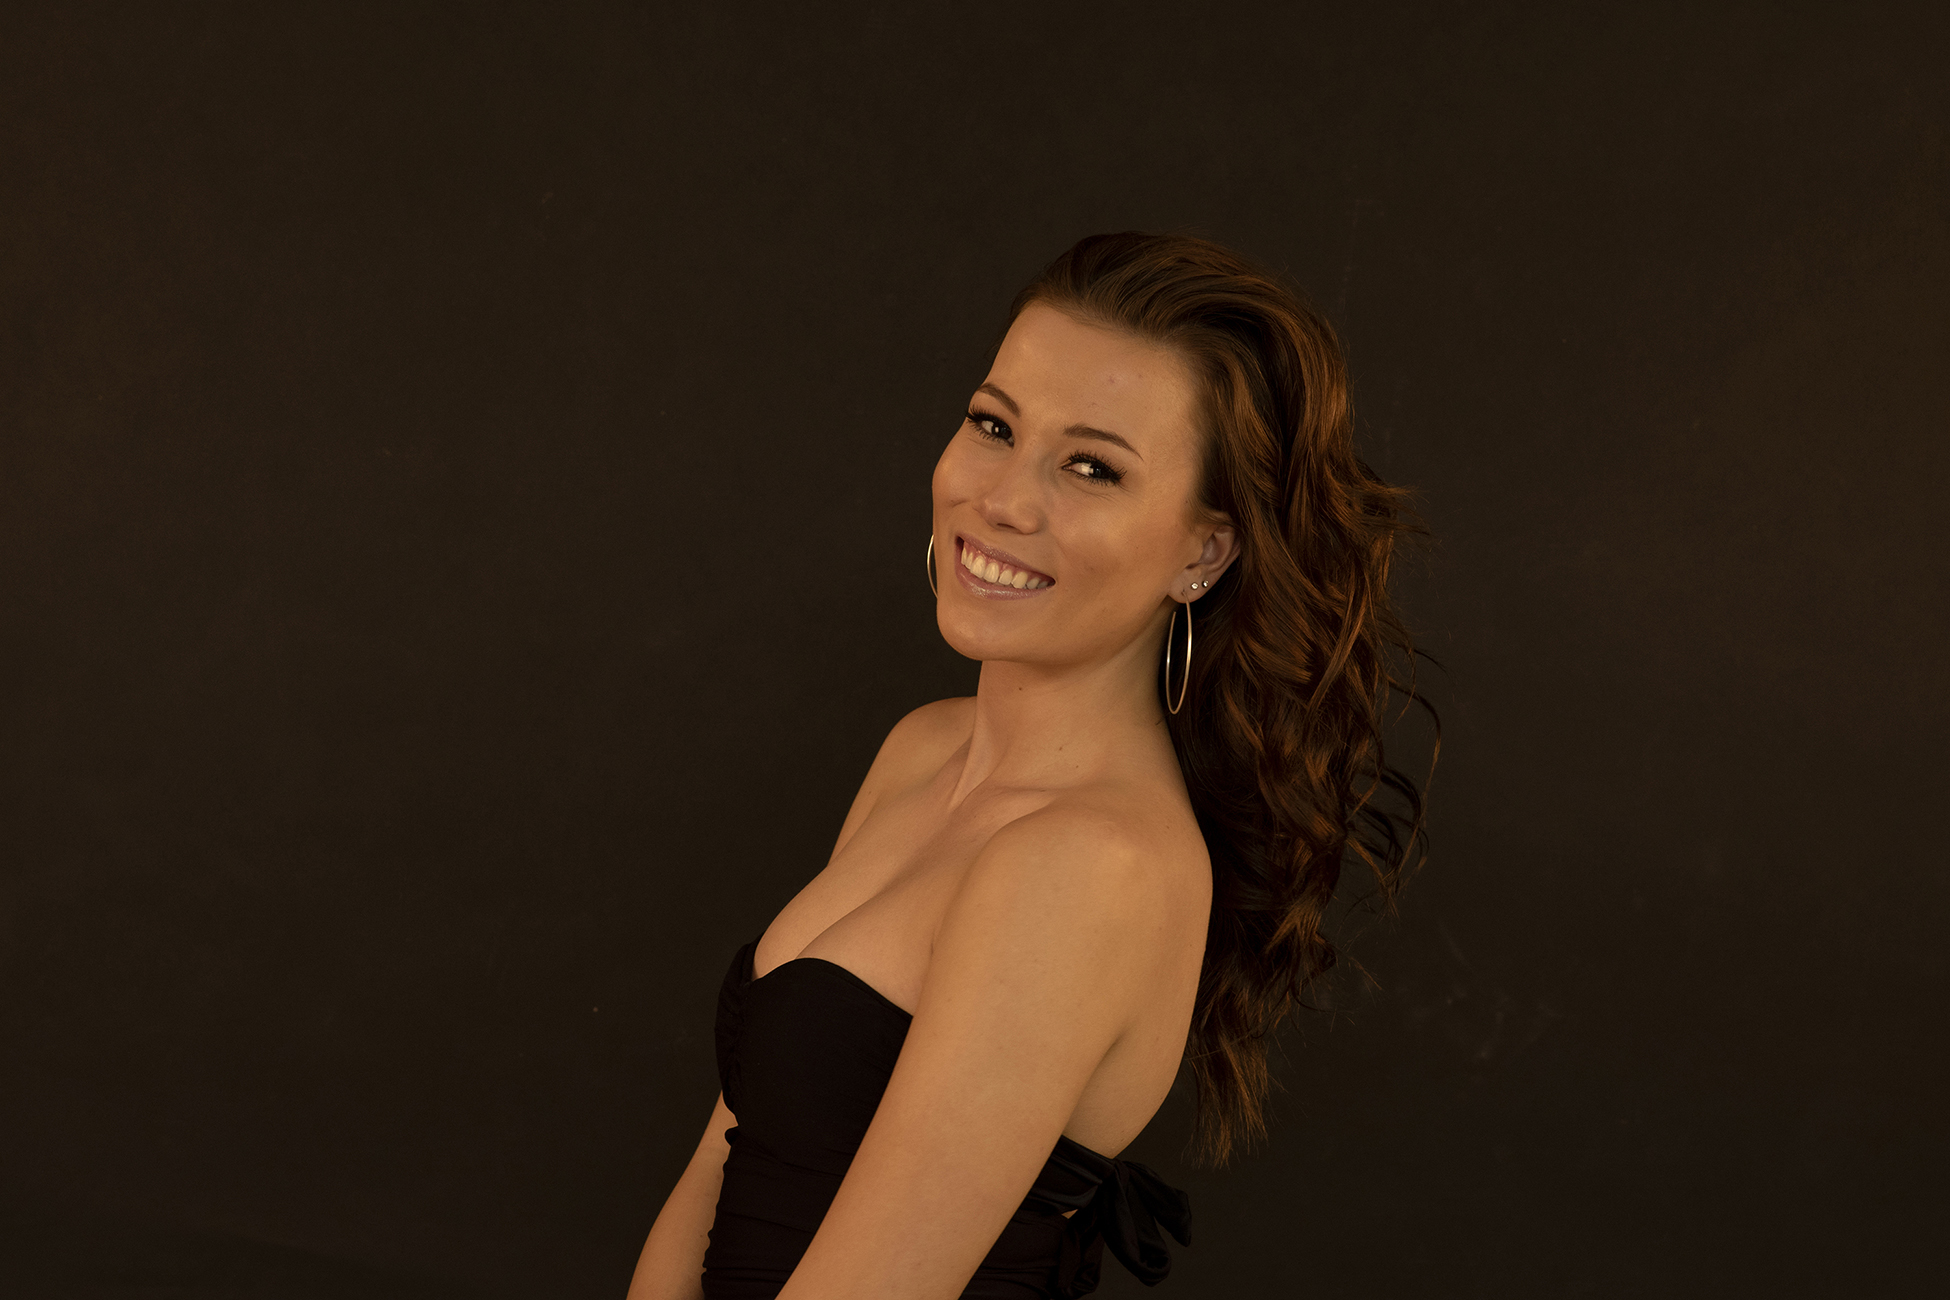 Model (Rebecca) smiling in black halter top, with a dark background